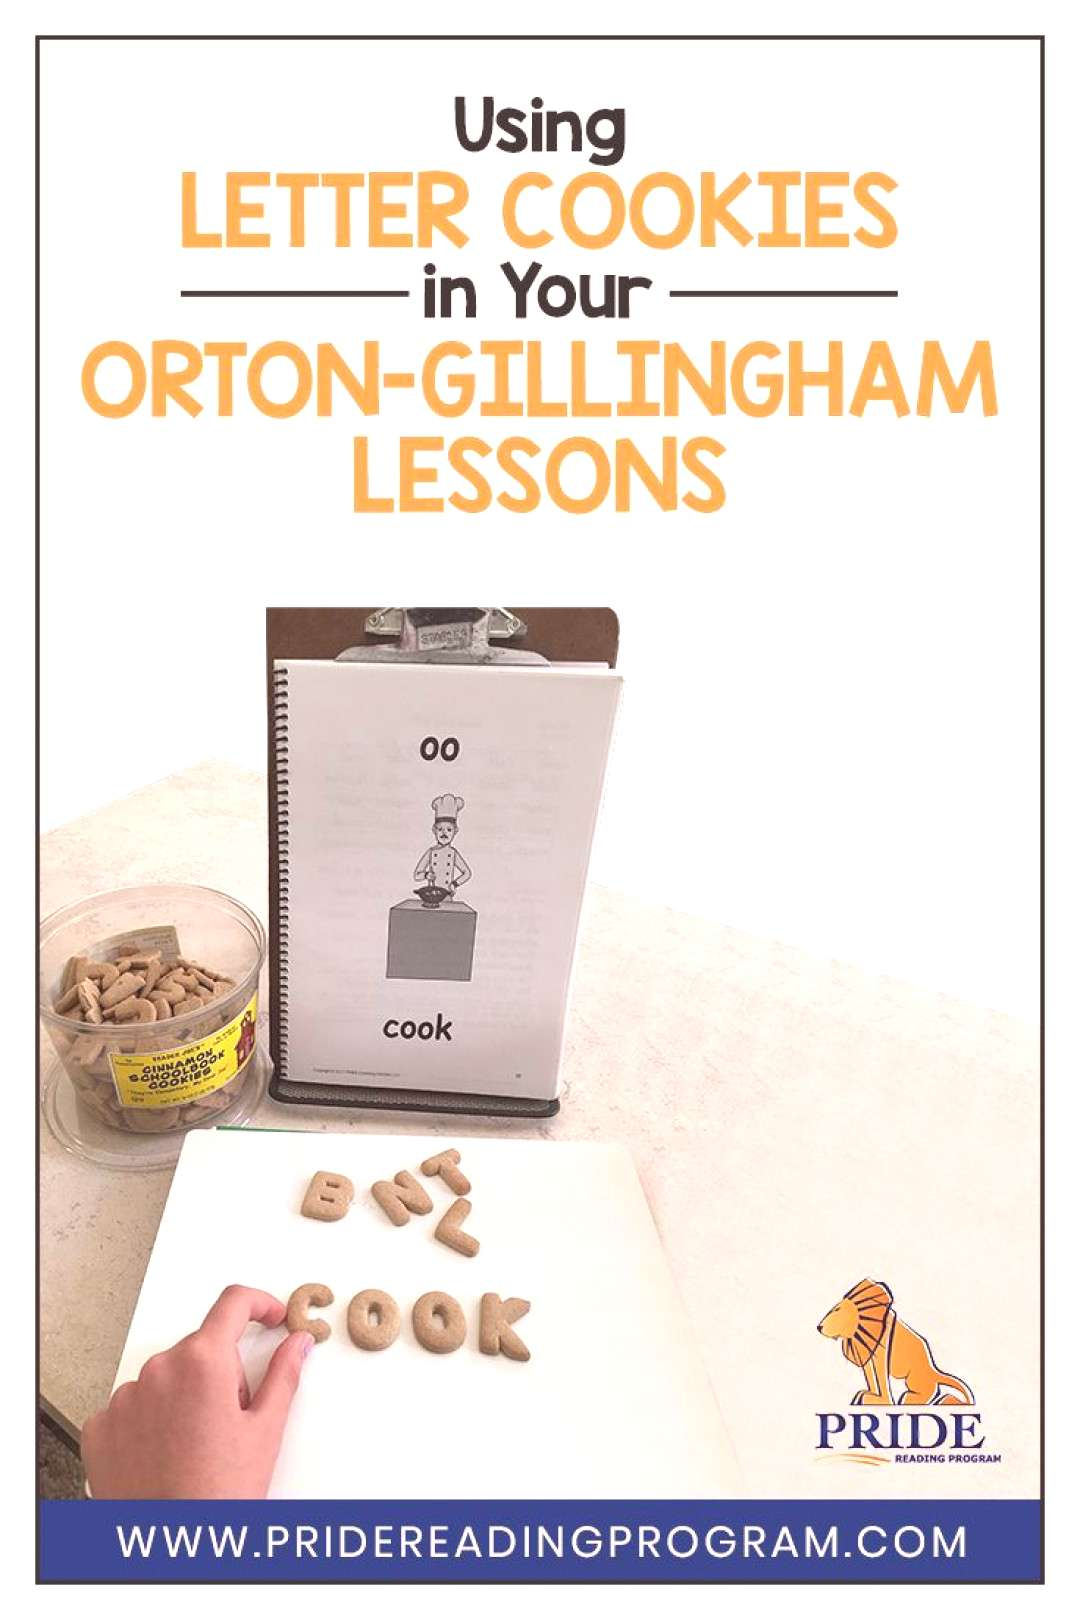 Using Letter Cookies in your Orton-Gillingham Lessons Spice up your Orton-Gillingham lessons with t